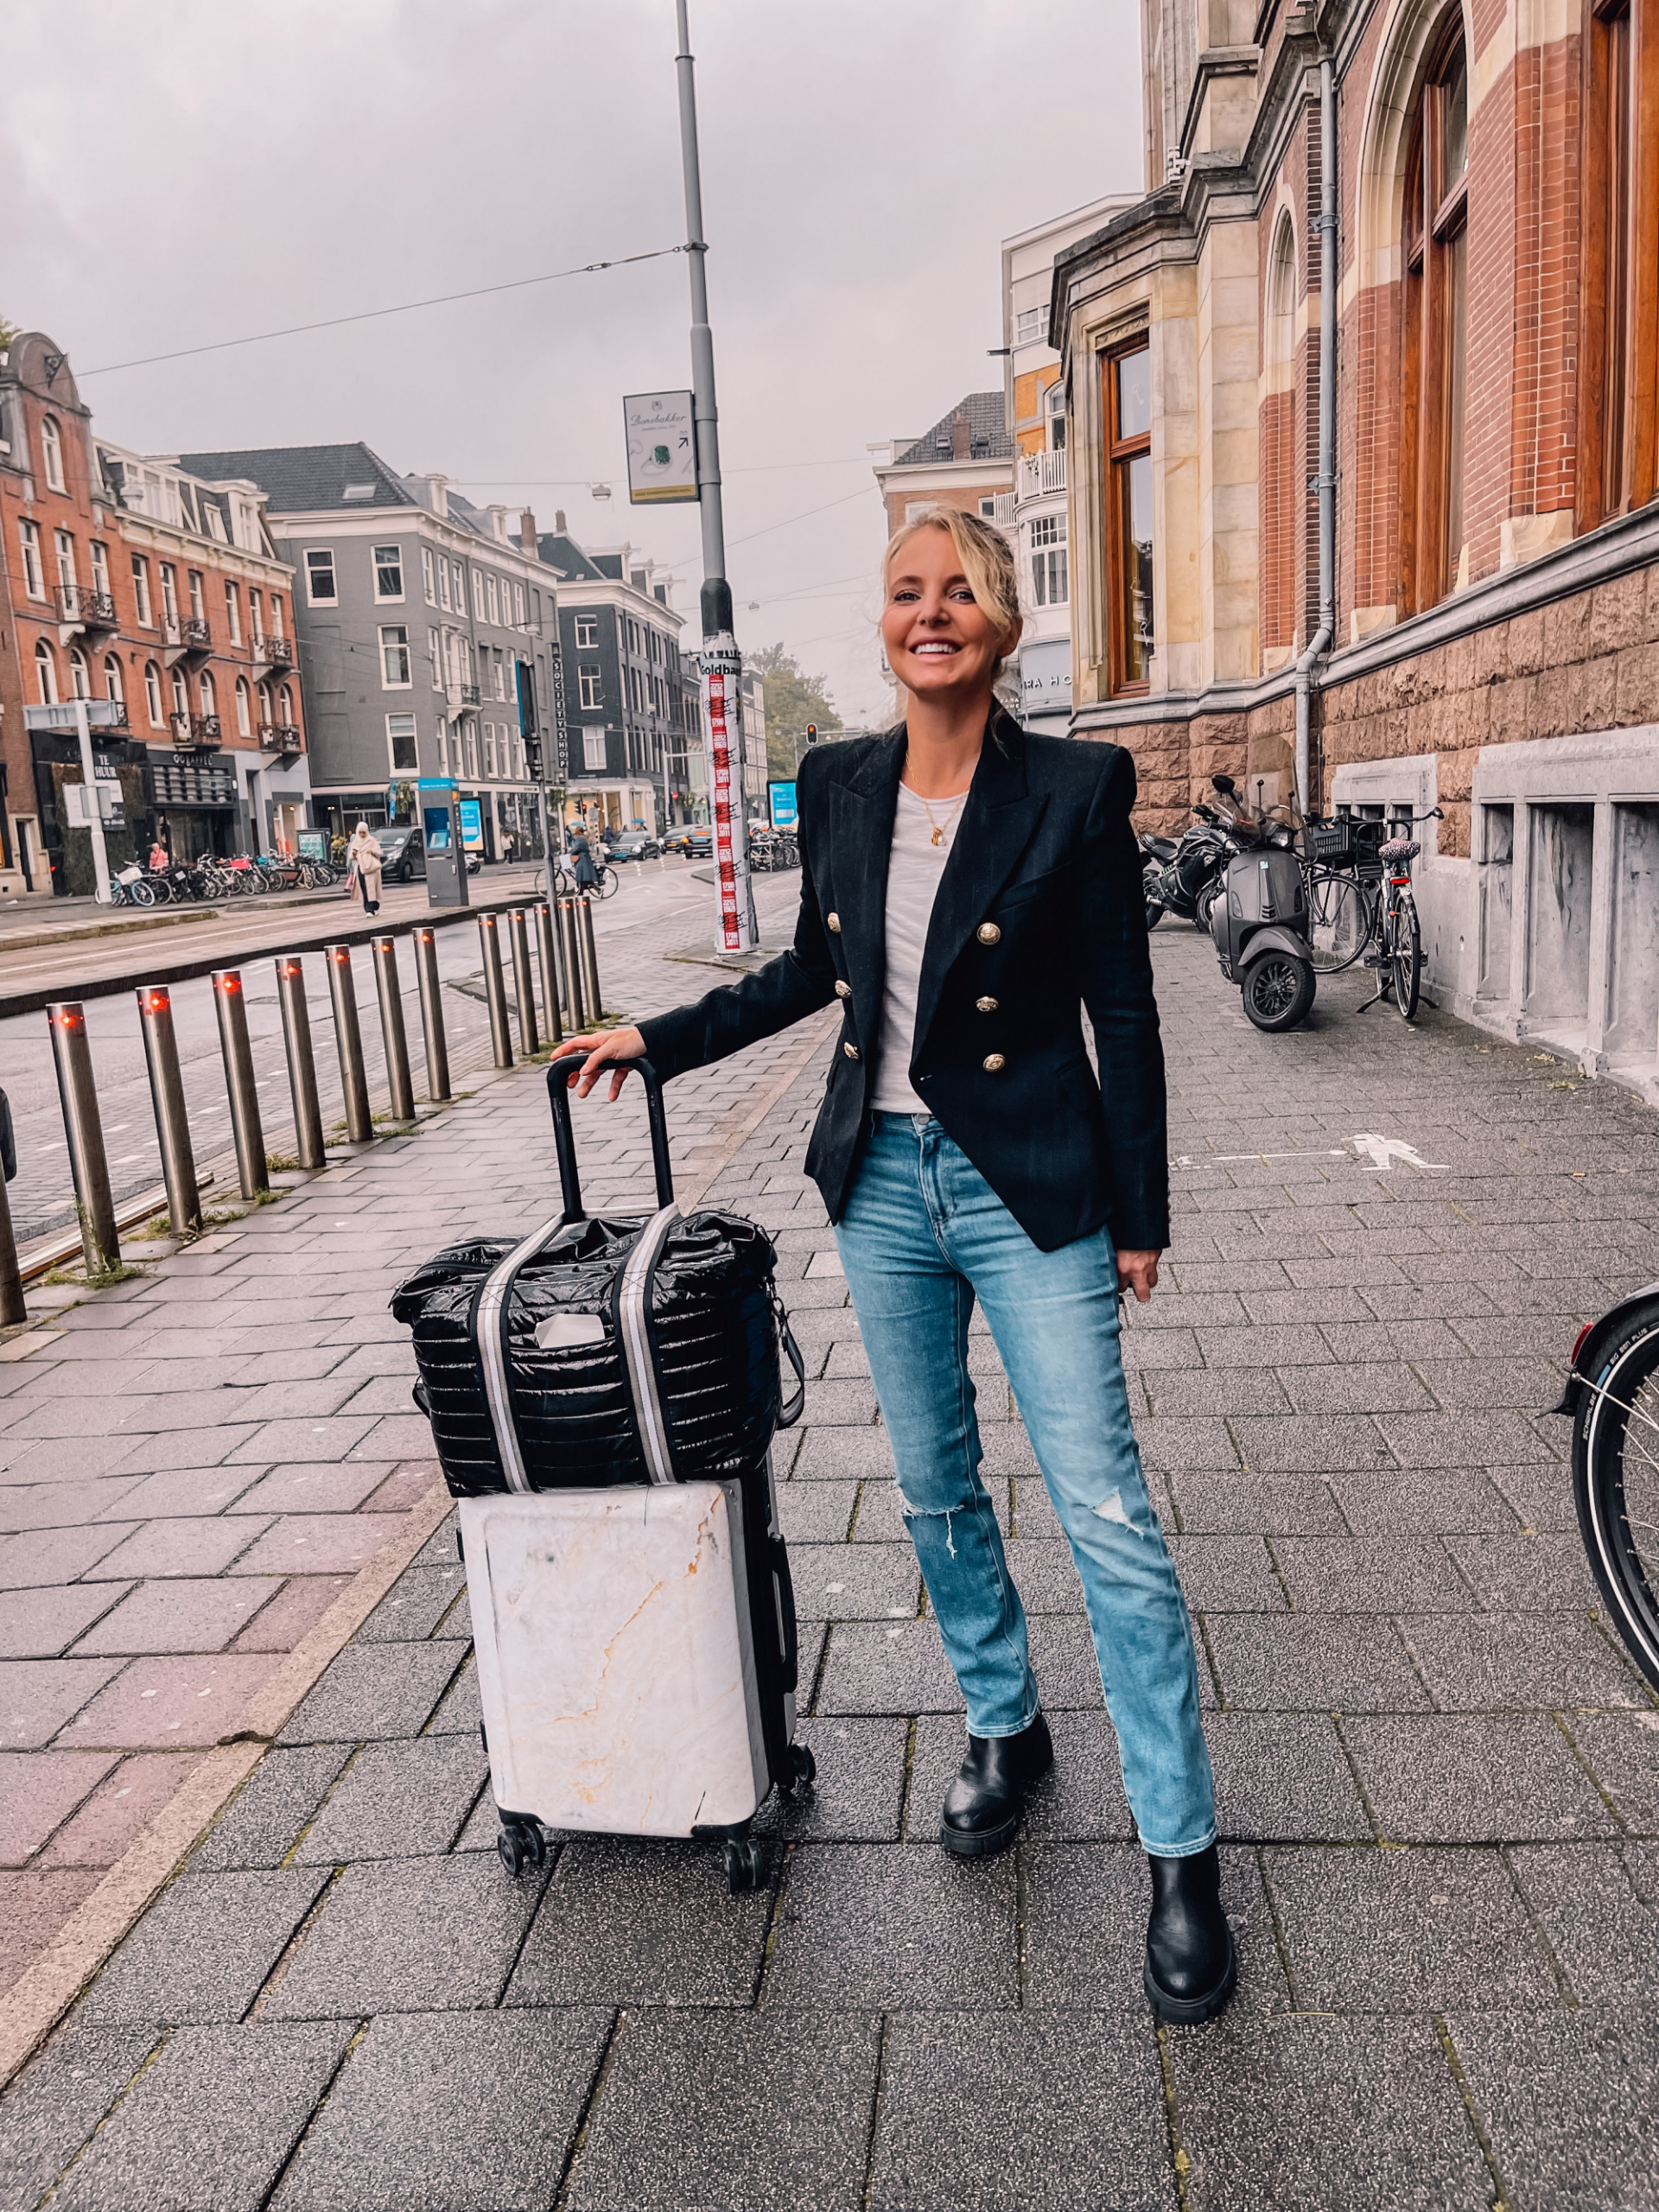 where to travel from spain, travel from spain, travel from madrid, Amsterdam, Netherlands, erin bsubee, where to travel, weekend trips from spain, weekend trips from madrid, where to travel in europe, balmain blazer, paige ripped stright jeans, steve madden booties, free people long sleeve ruched tee, think royln tote, calpak suitcase